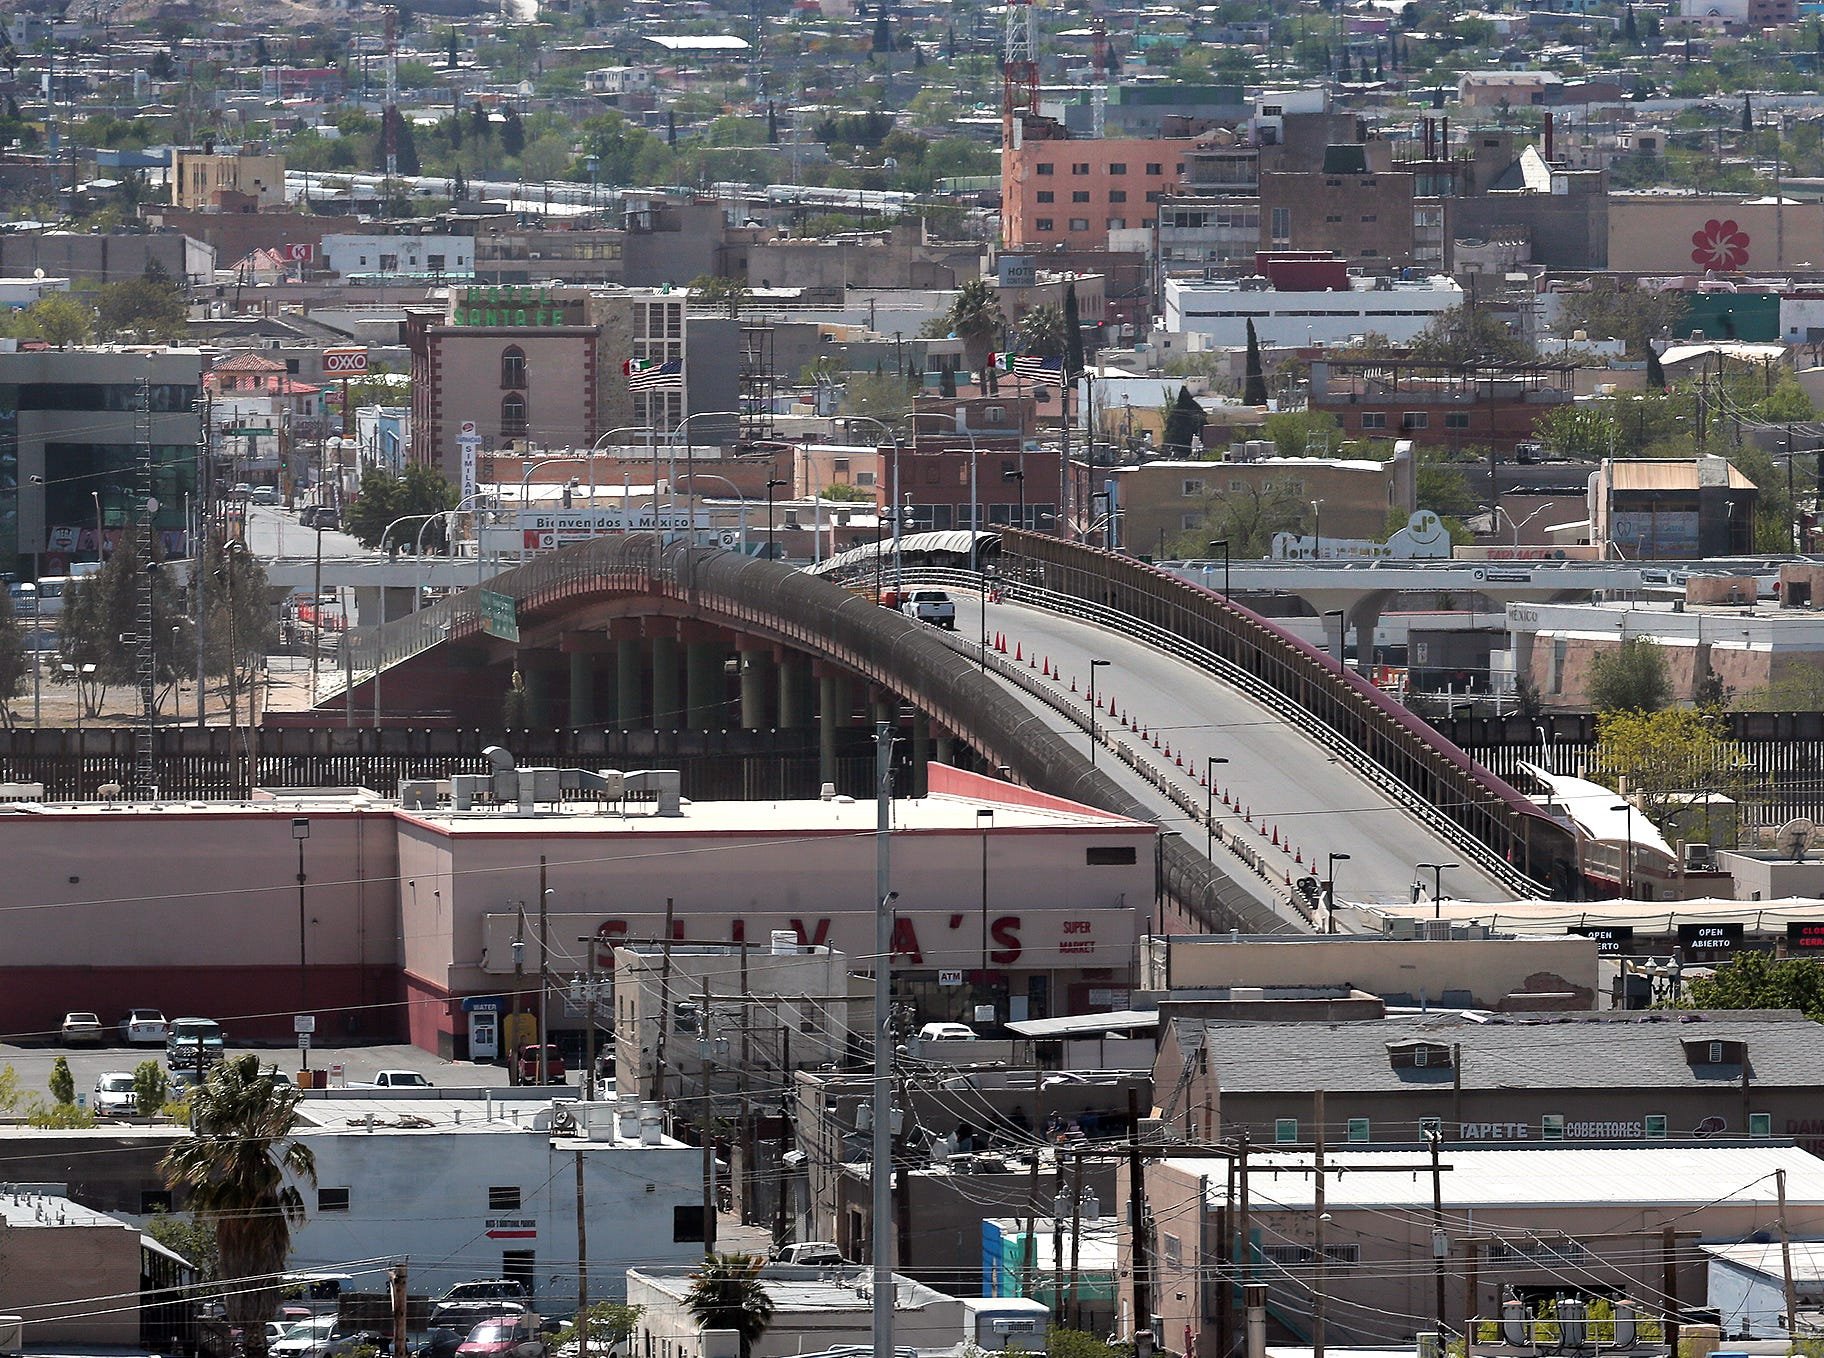 The Paso del Norte International Bridge at Stanton Street is a southbownd bridge from El Paso to Juarez.